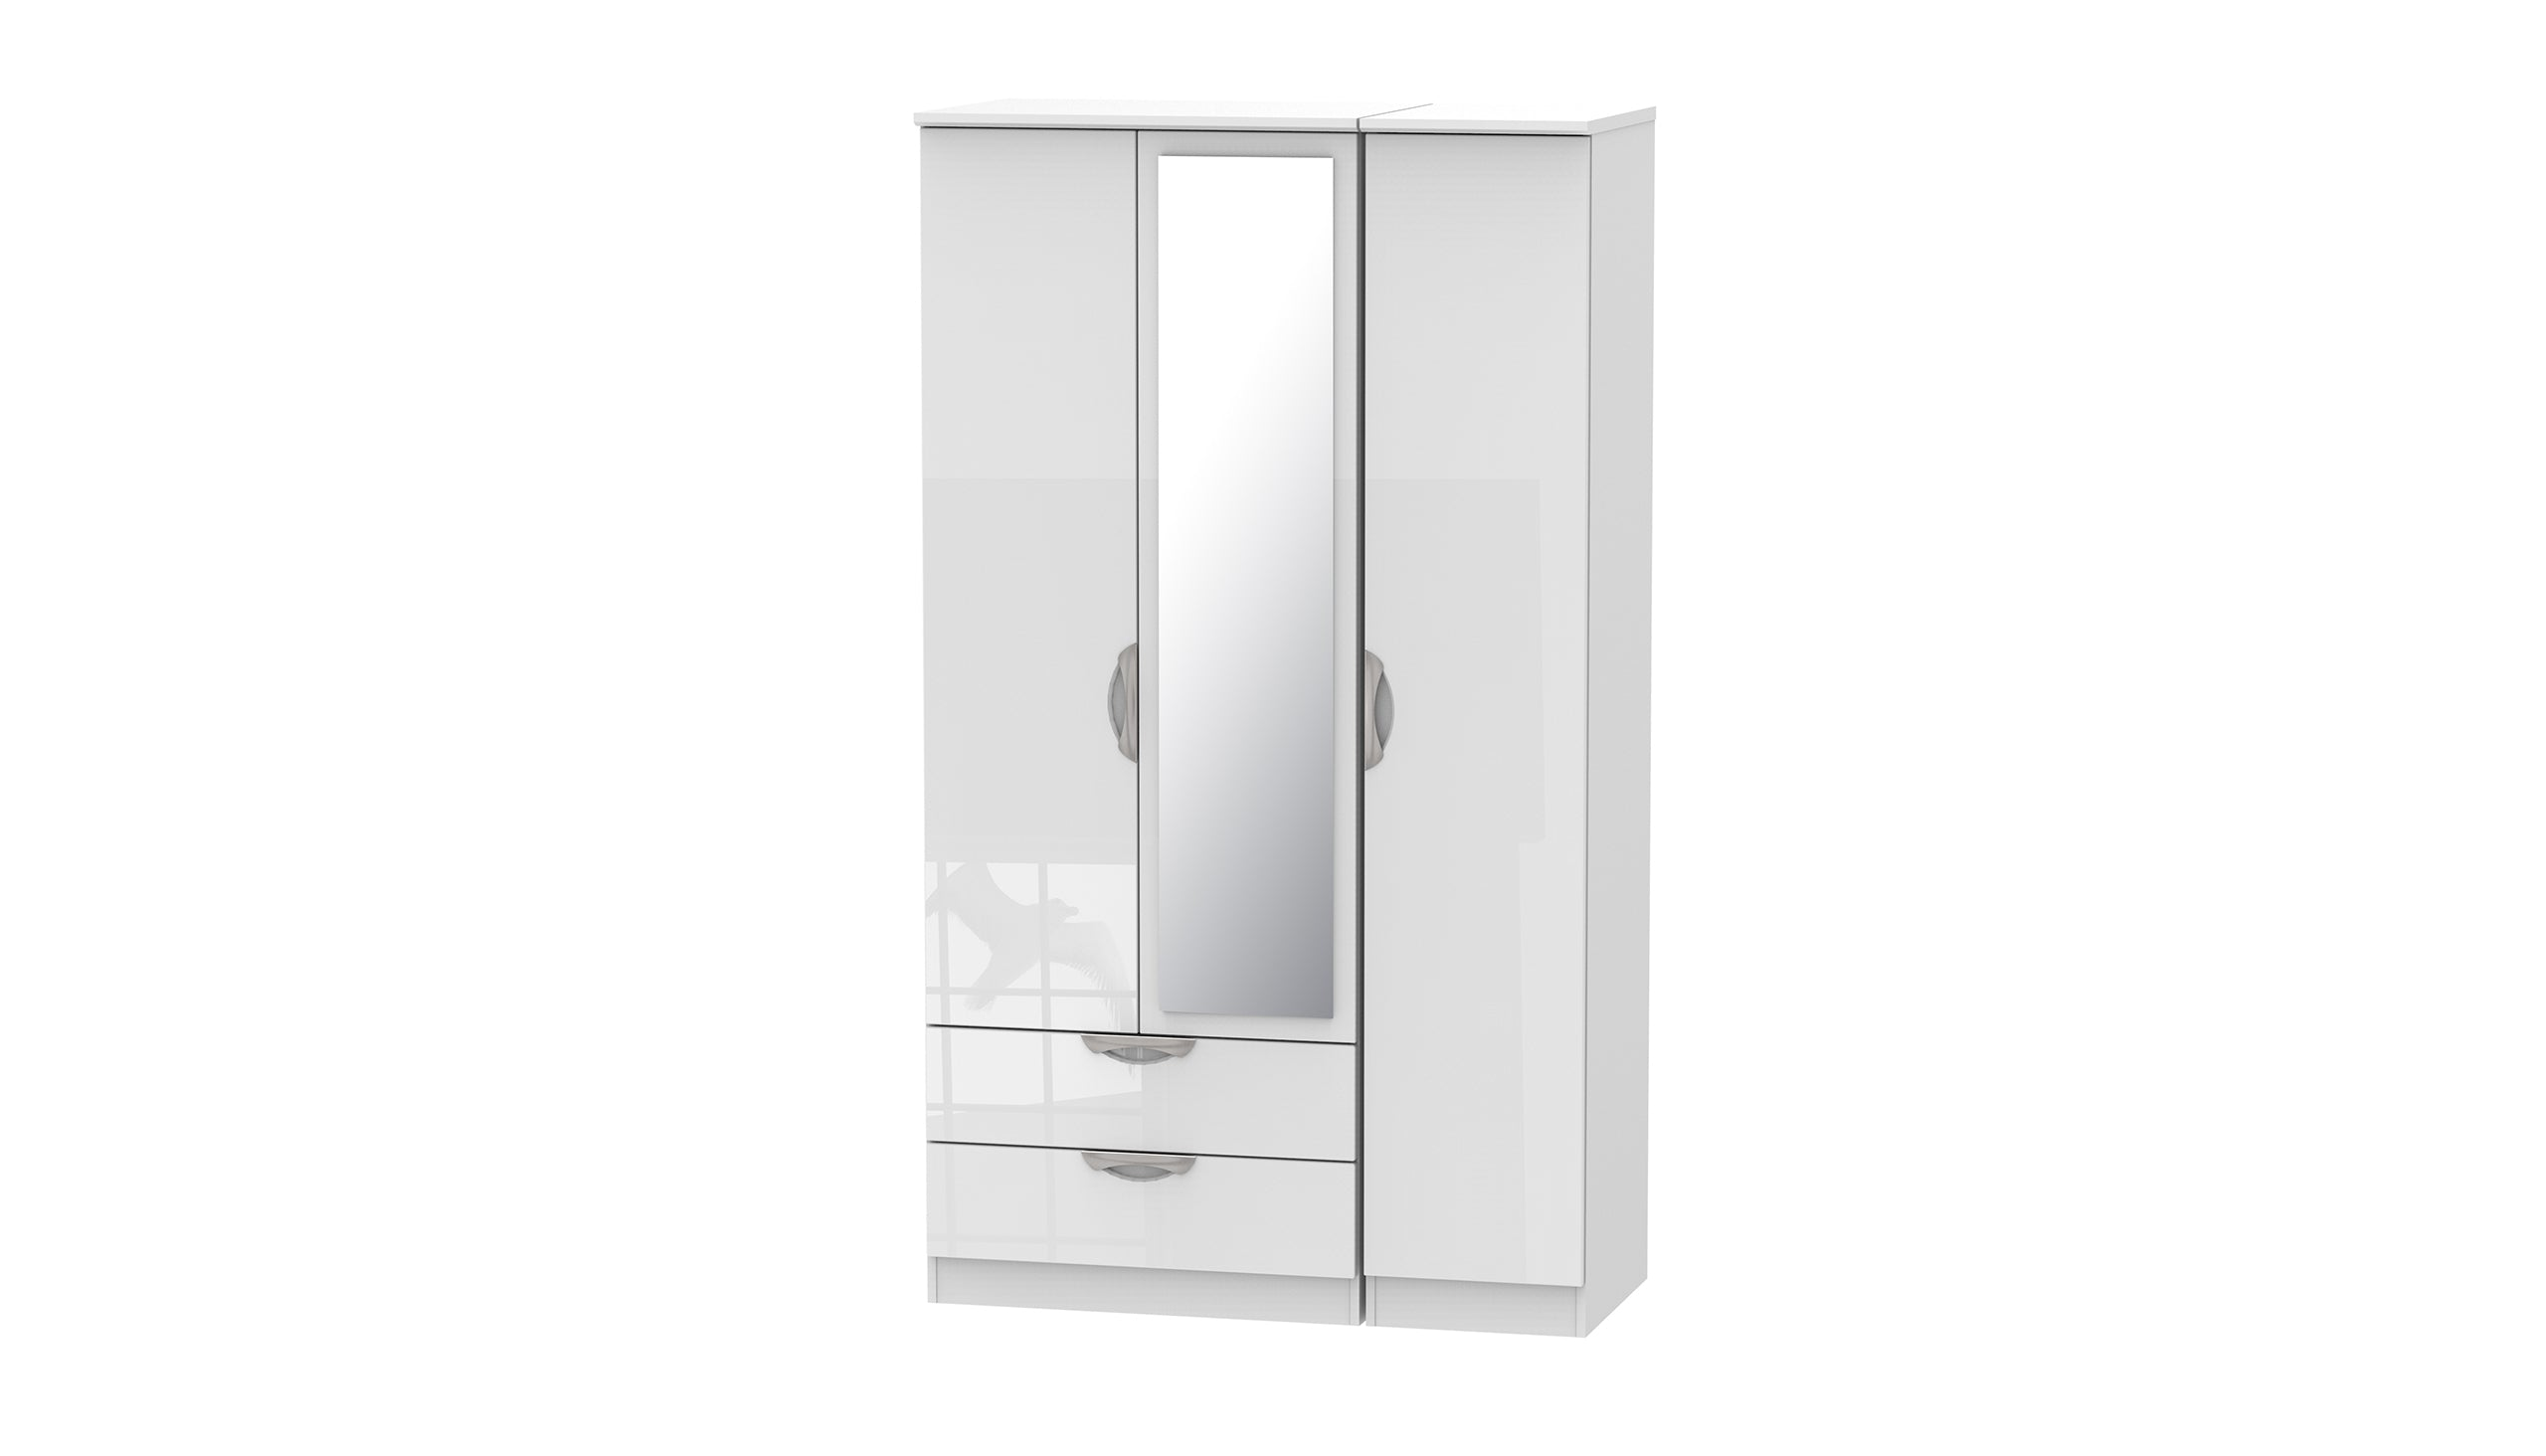 Moda Tall 3 Door 2 Drawer 1 Mirror Wardrobe - AHF Furniture & Carpets